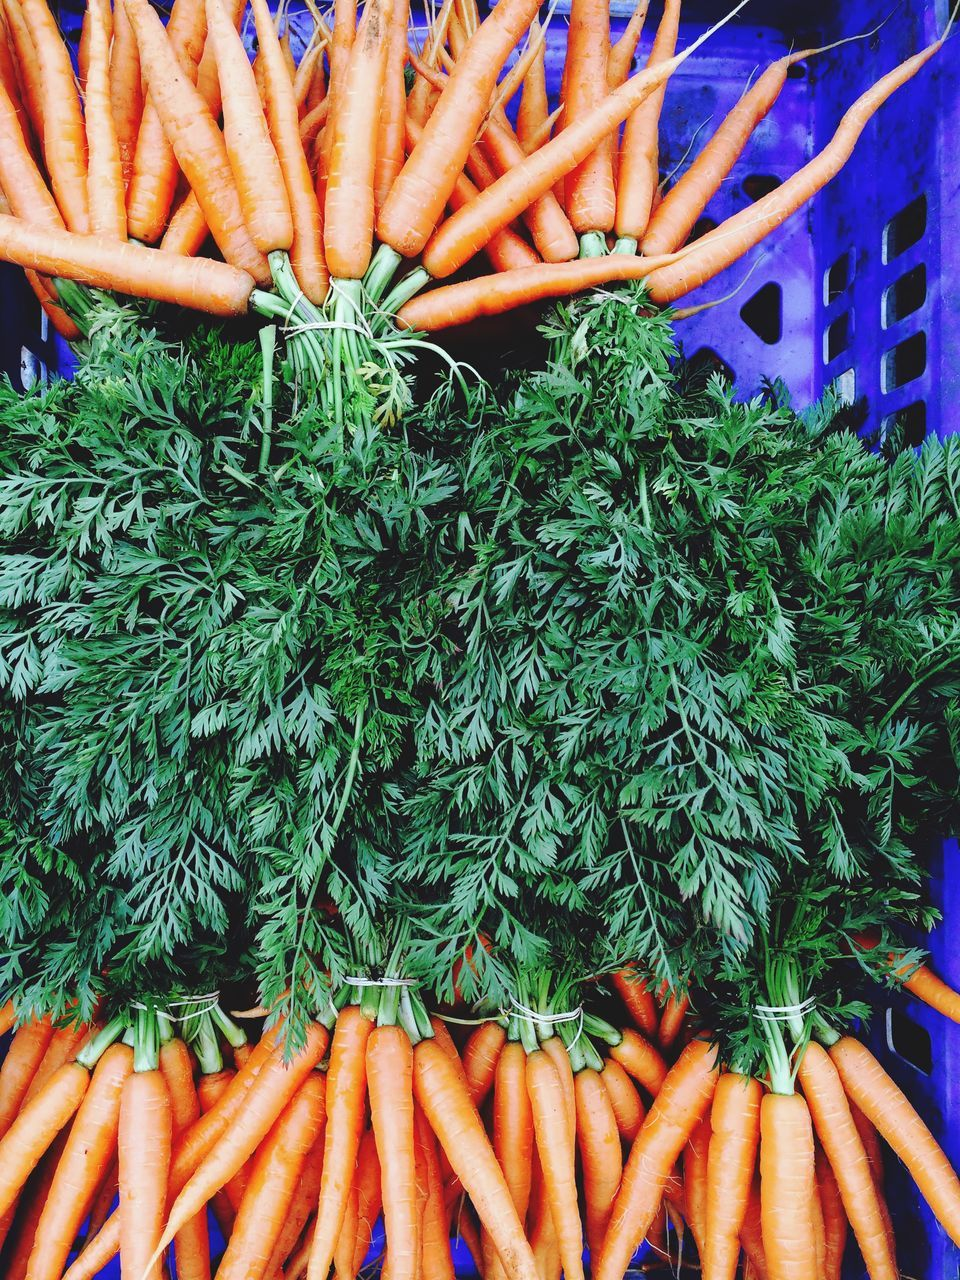 Close-Up View Of Fresh Carrots